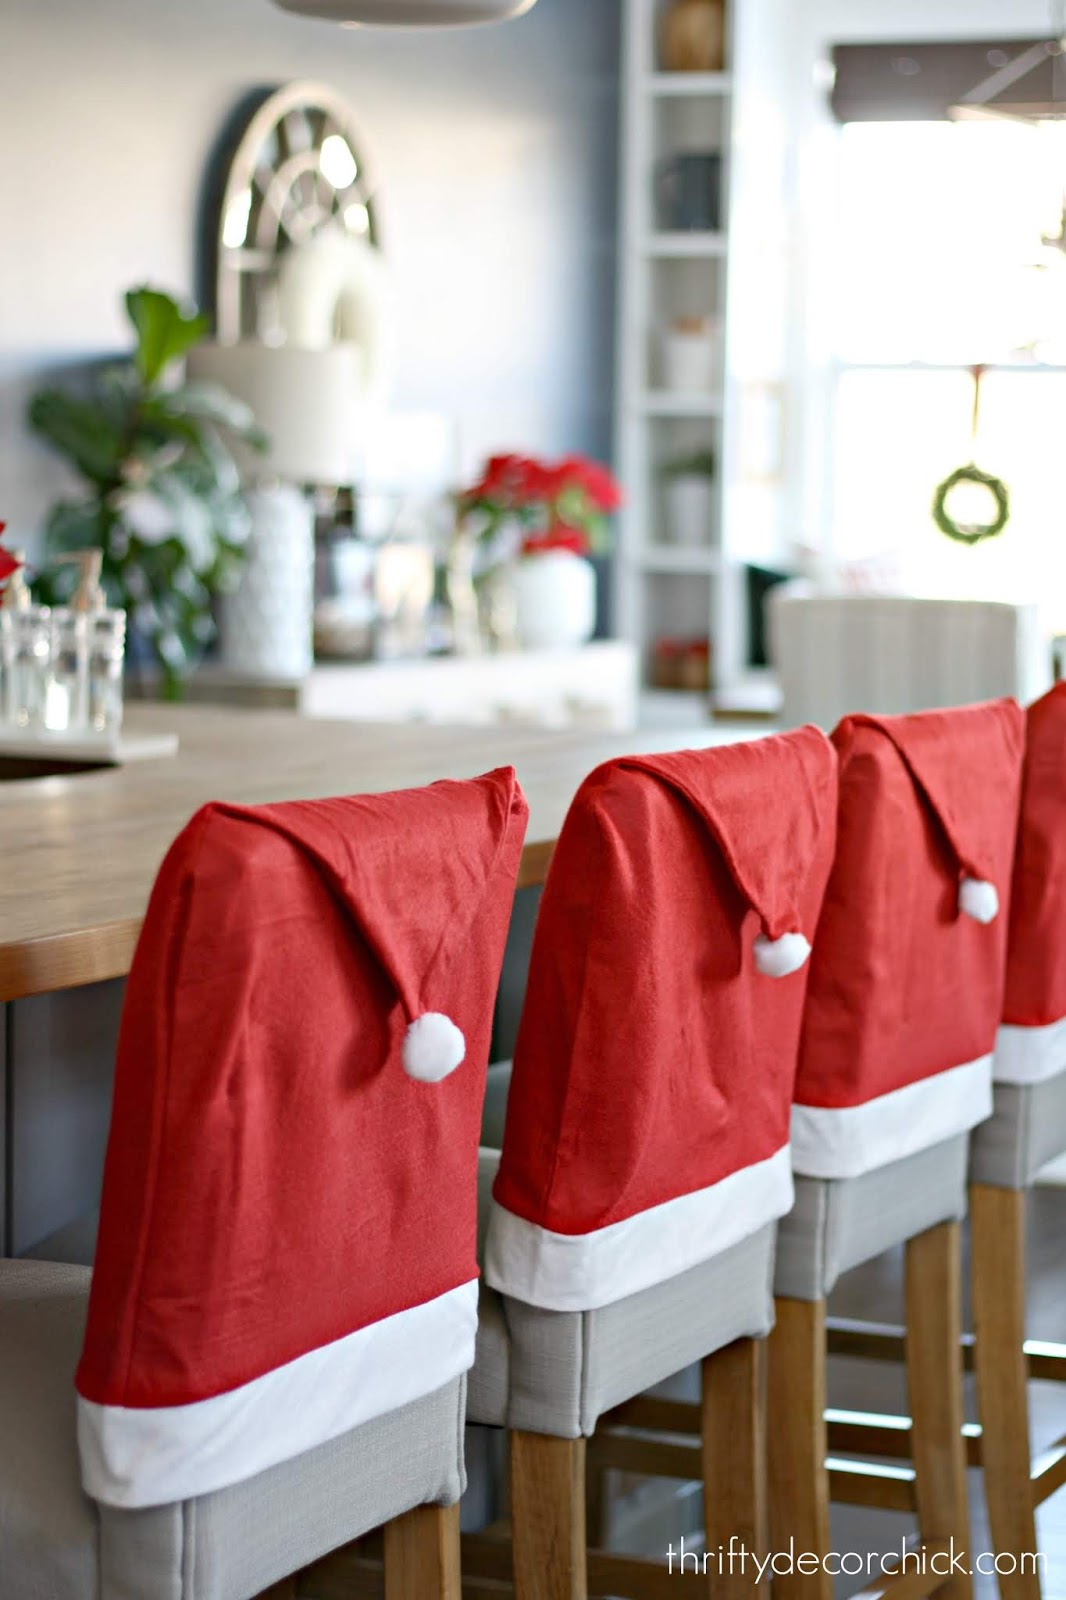 Santa hats on chairs